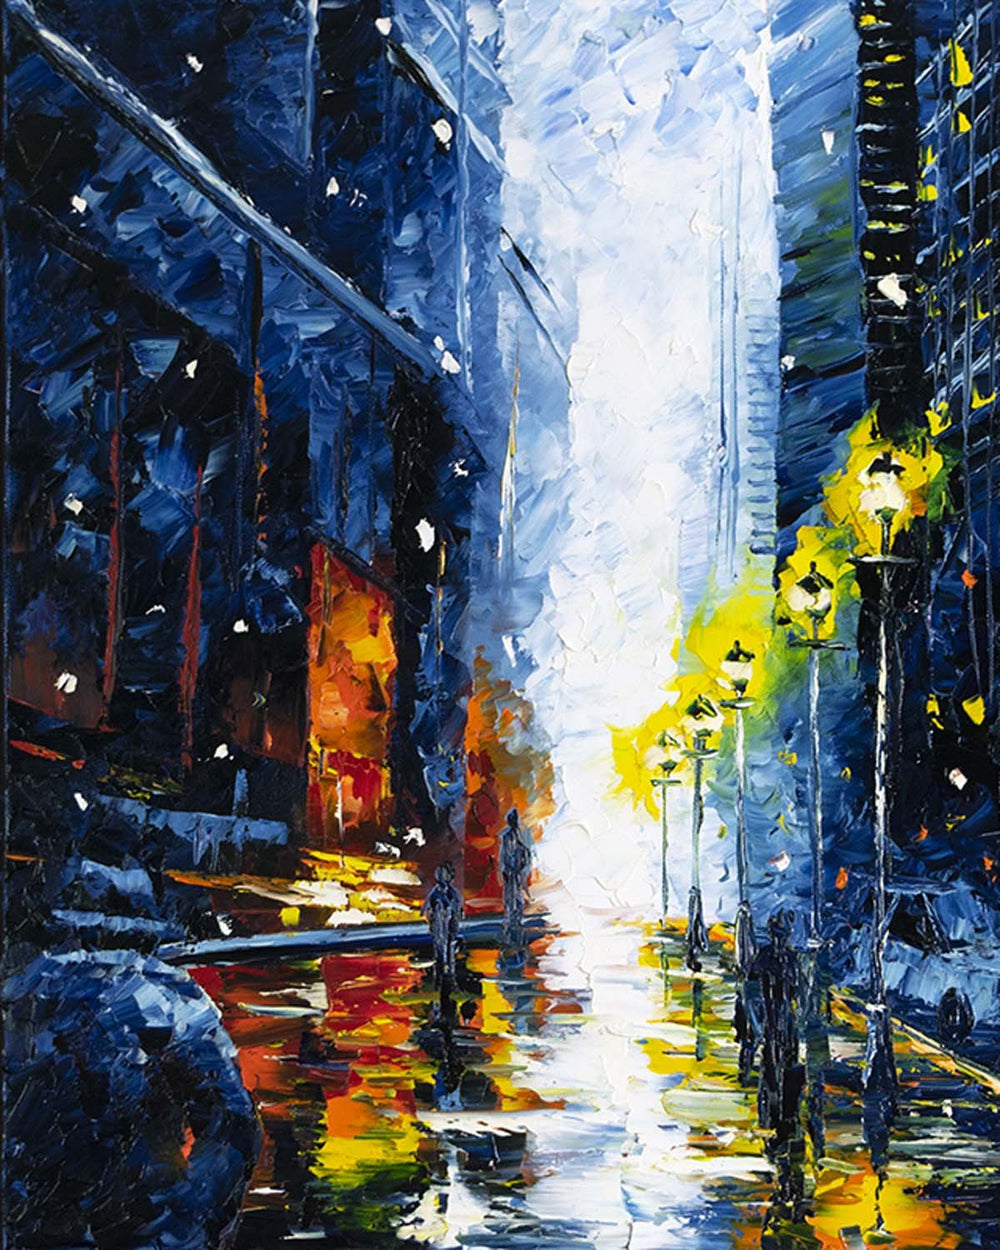 Large oil on canvas painting of Chicago street in winter with snow and street lights